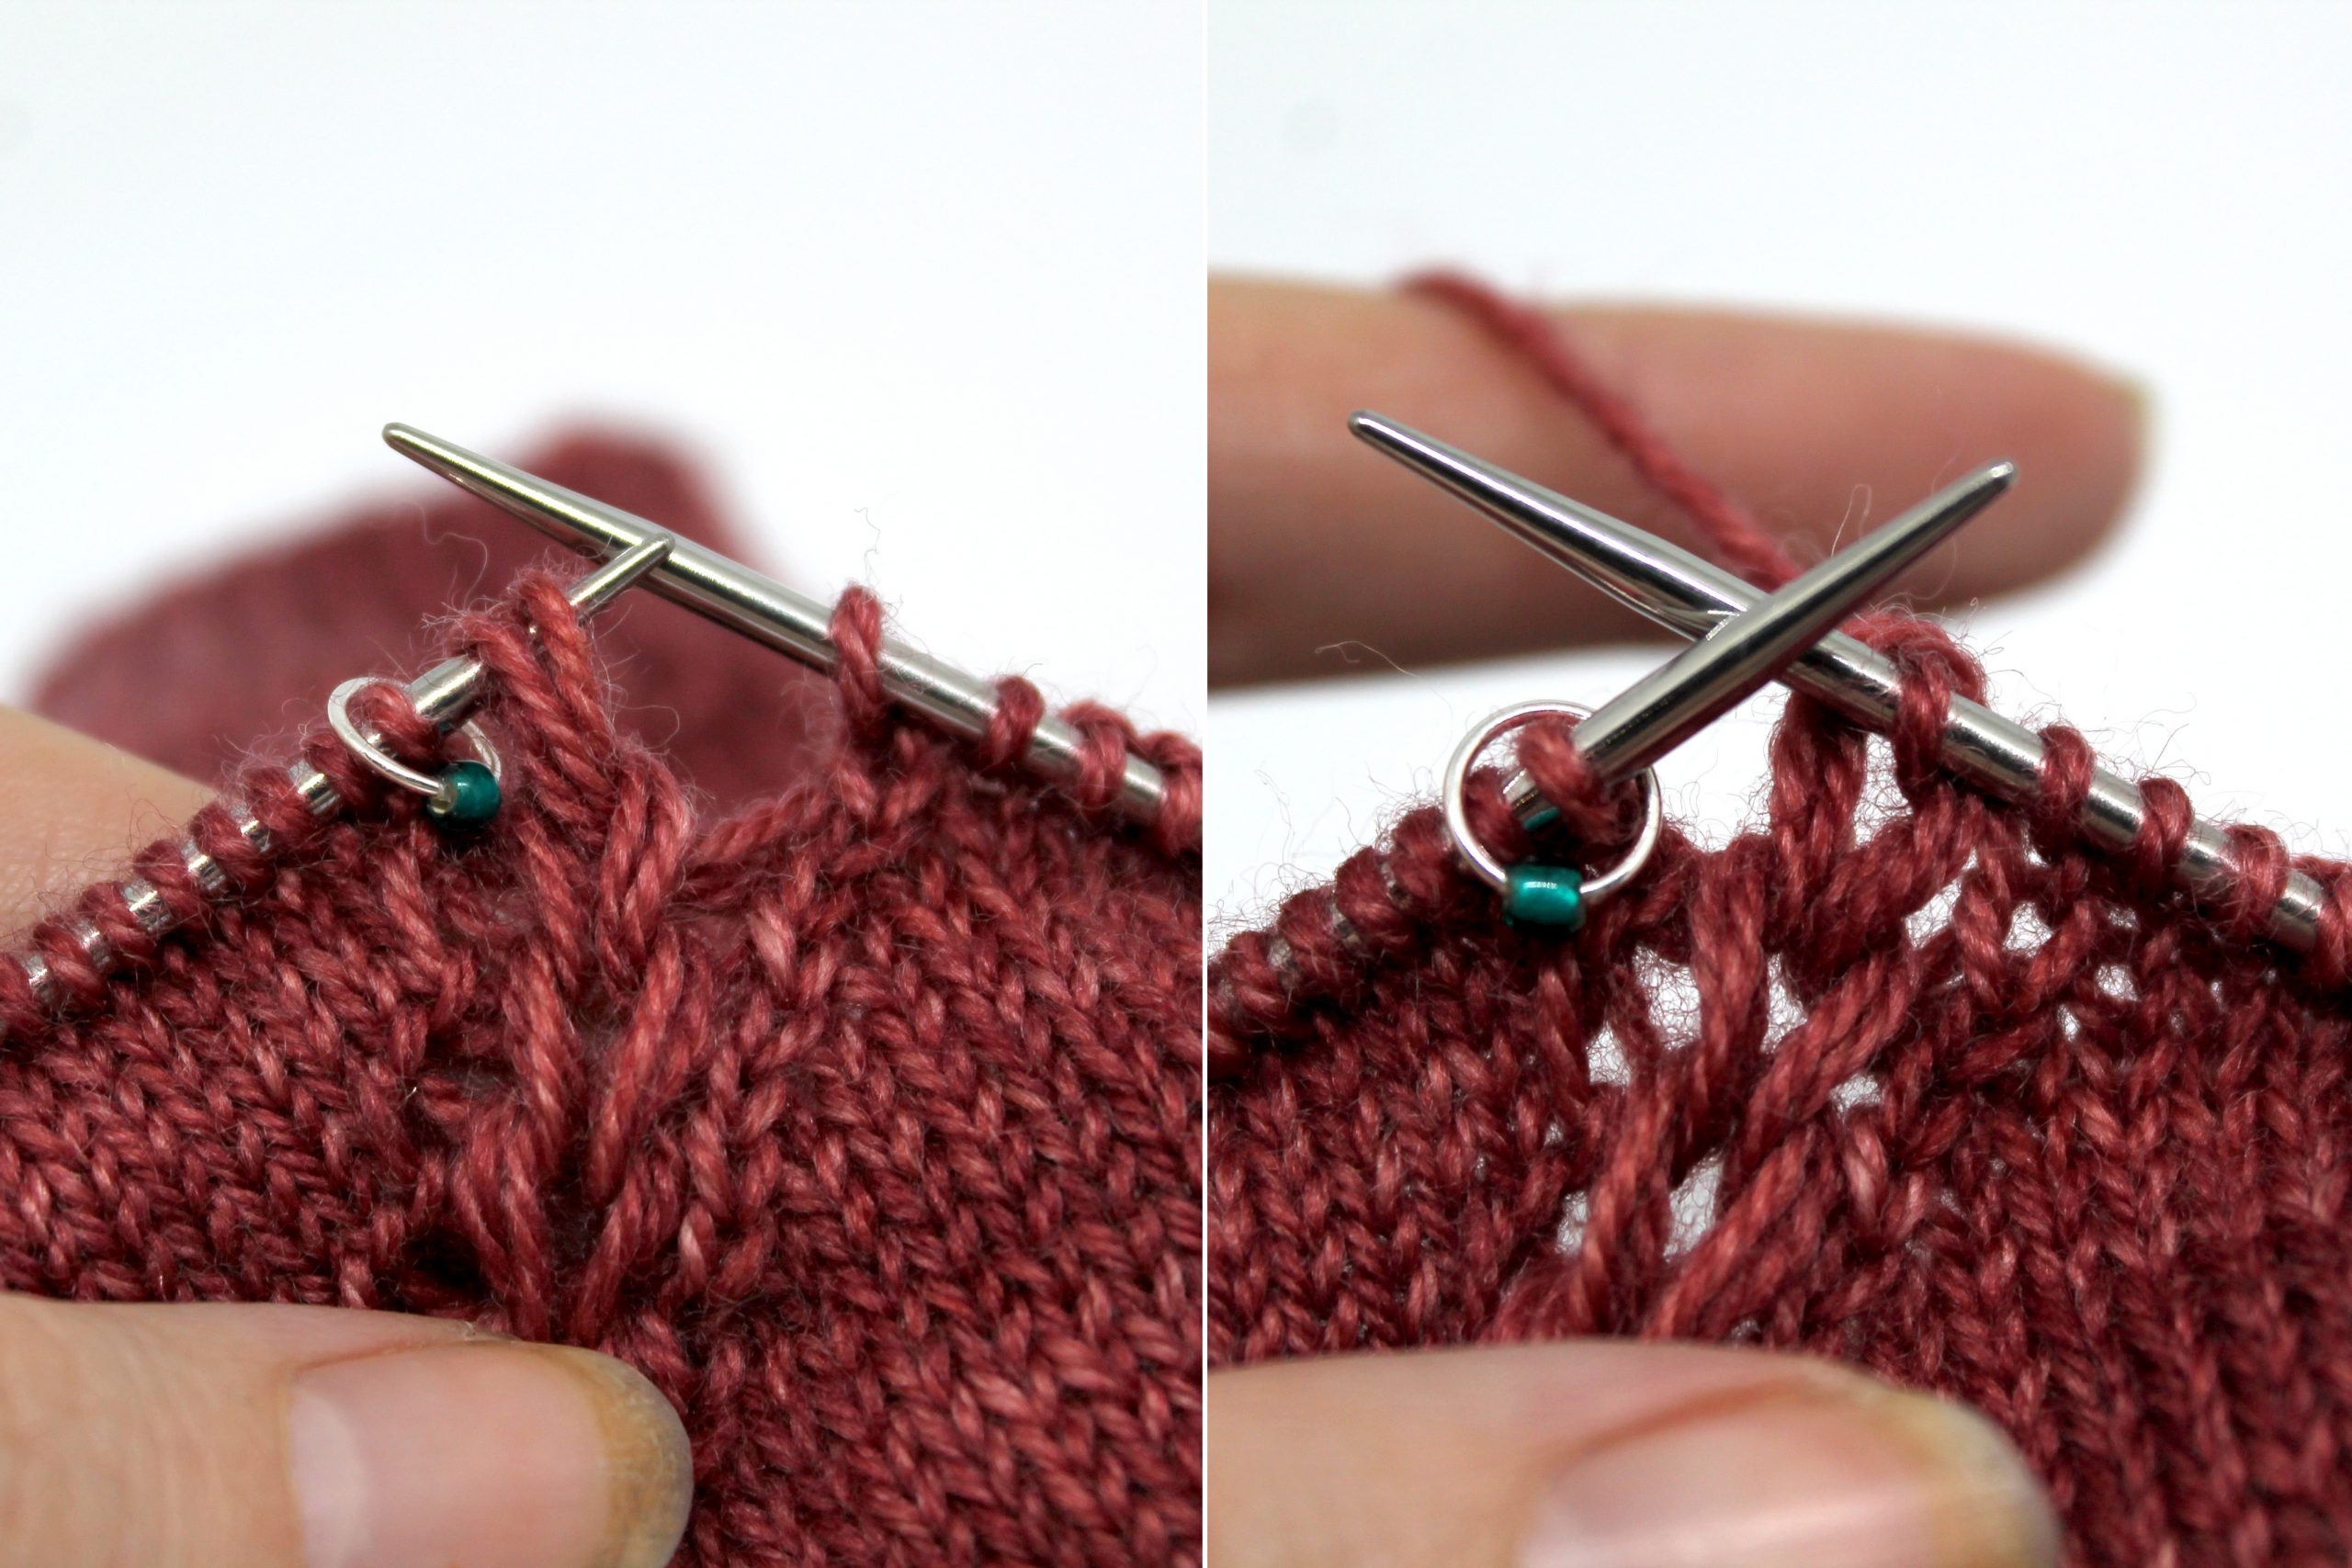 Two images. Left Image: The three remaining strands have been placed on the left hand knitting needle as one stitch. Right Image: The three strands have been knit together as one stitch which is now on the right hand needle.